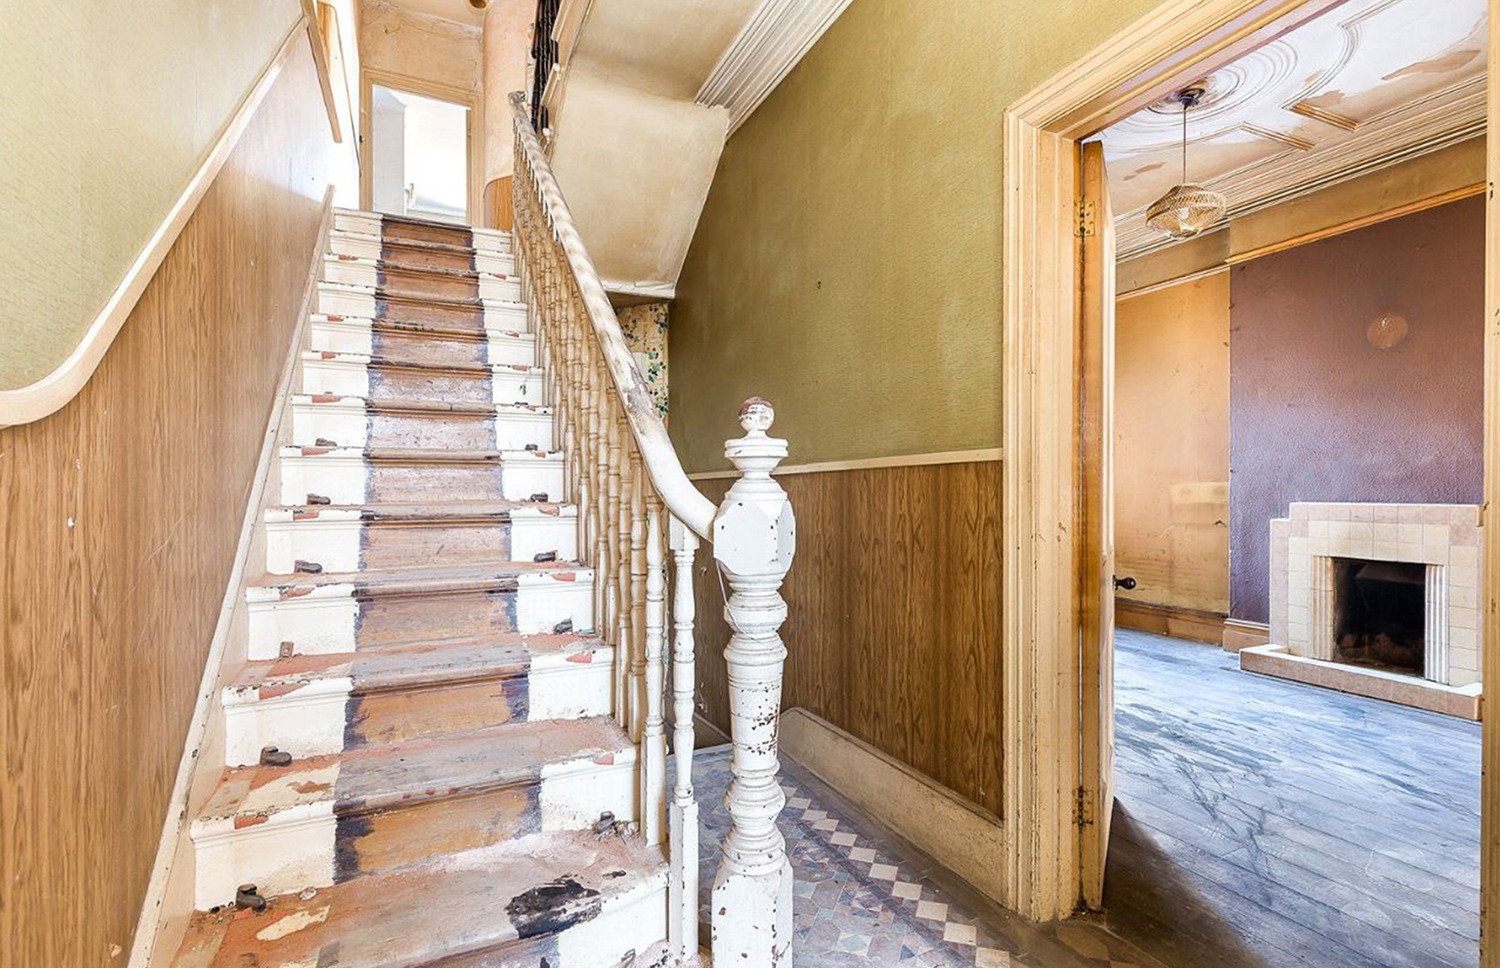 Despite its condition, the property's sweeping Edwardian staircase is still impressive. Image: Savills